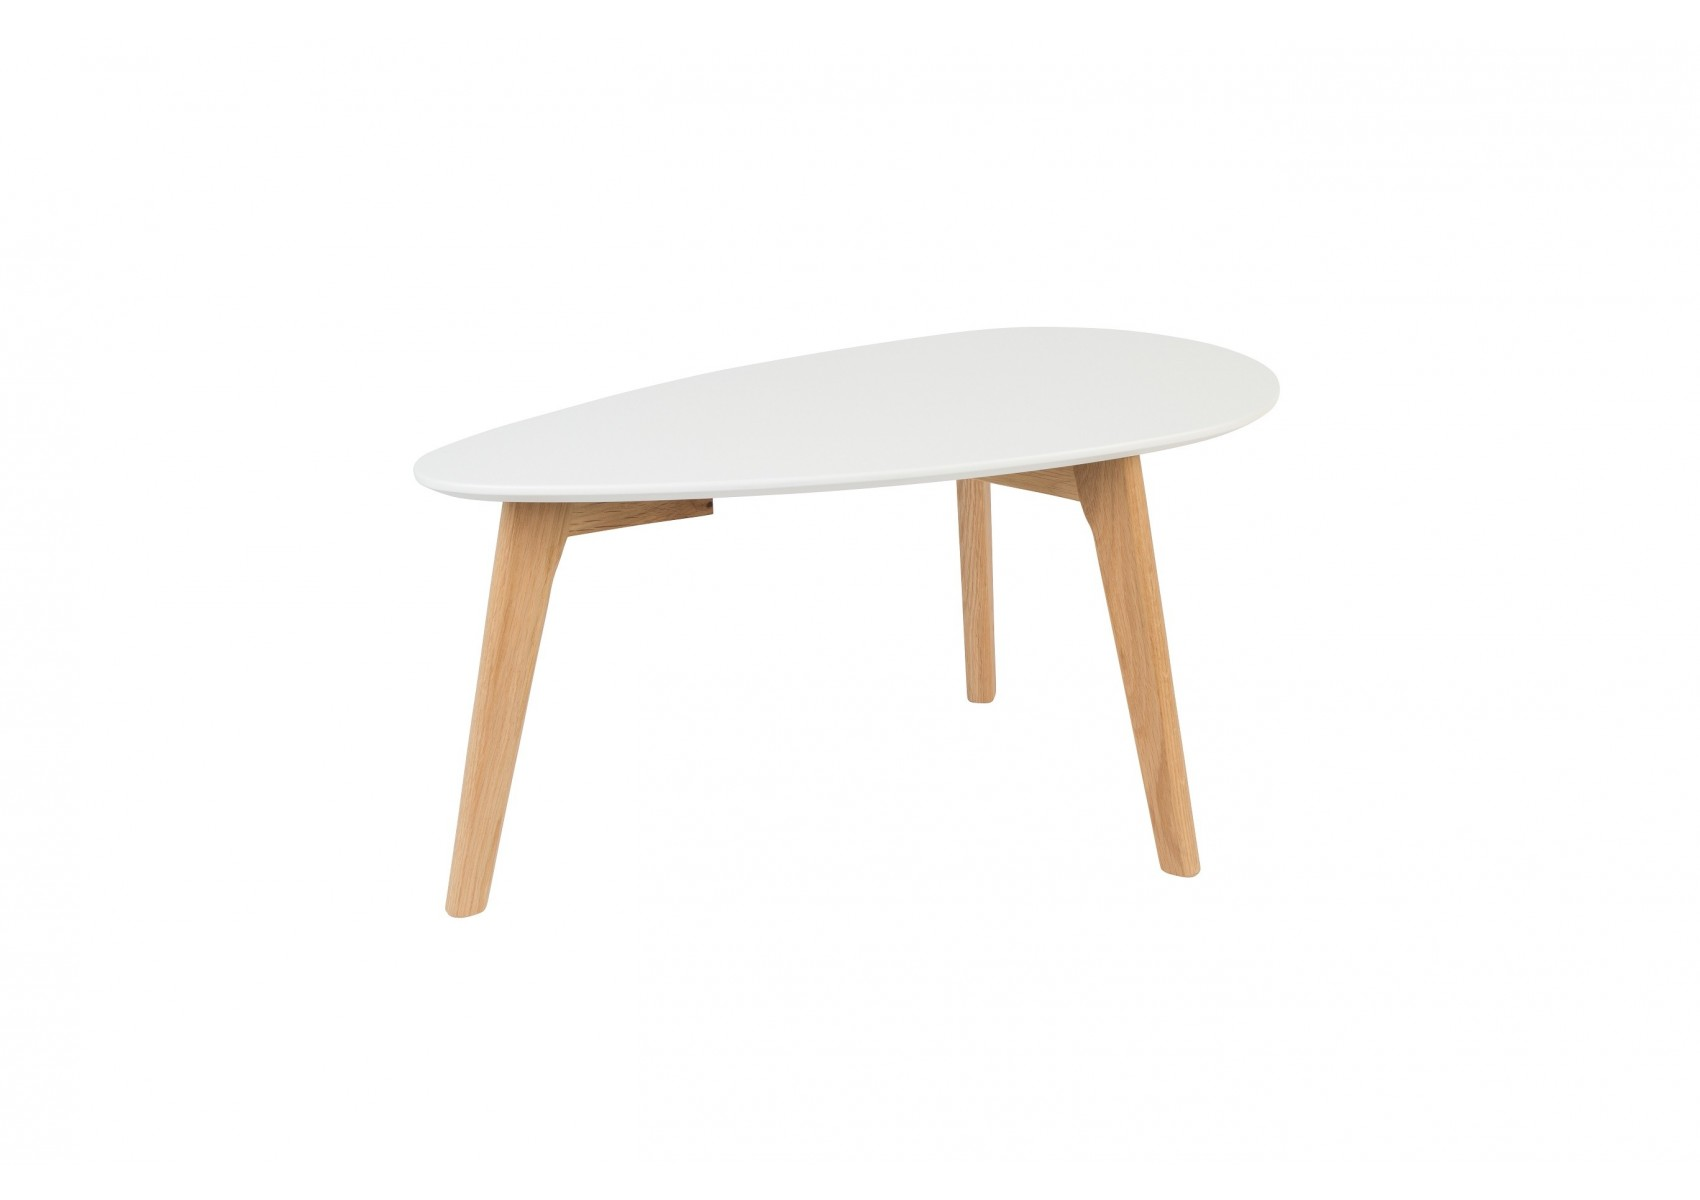 Tables basse scandinave drop laqu e blanche for Grande table basse scandinave